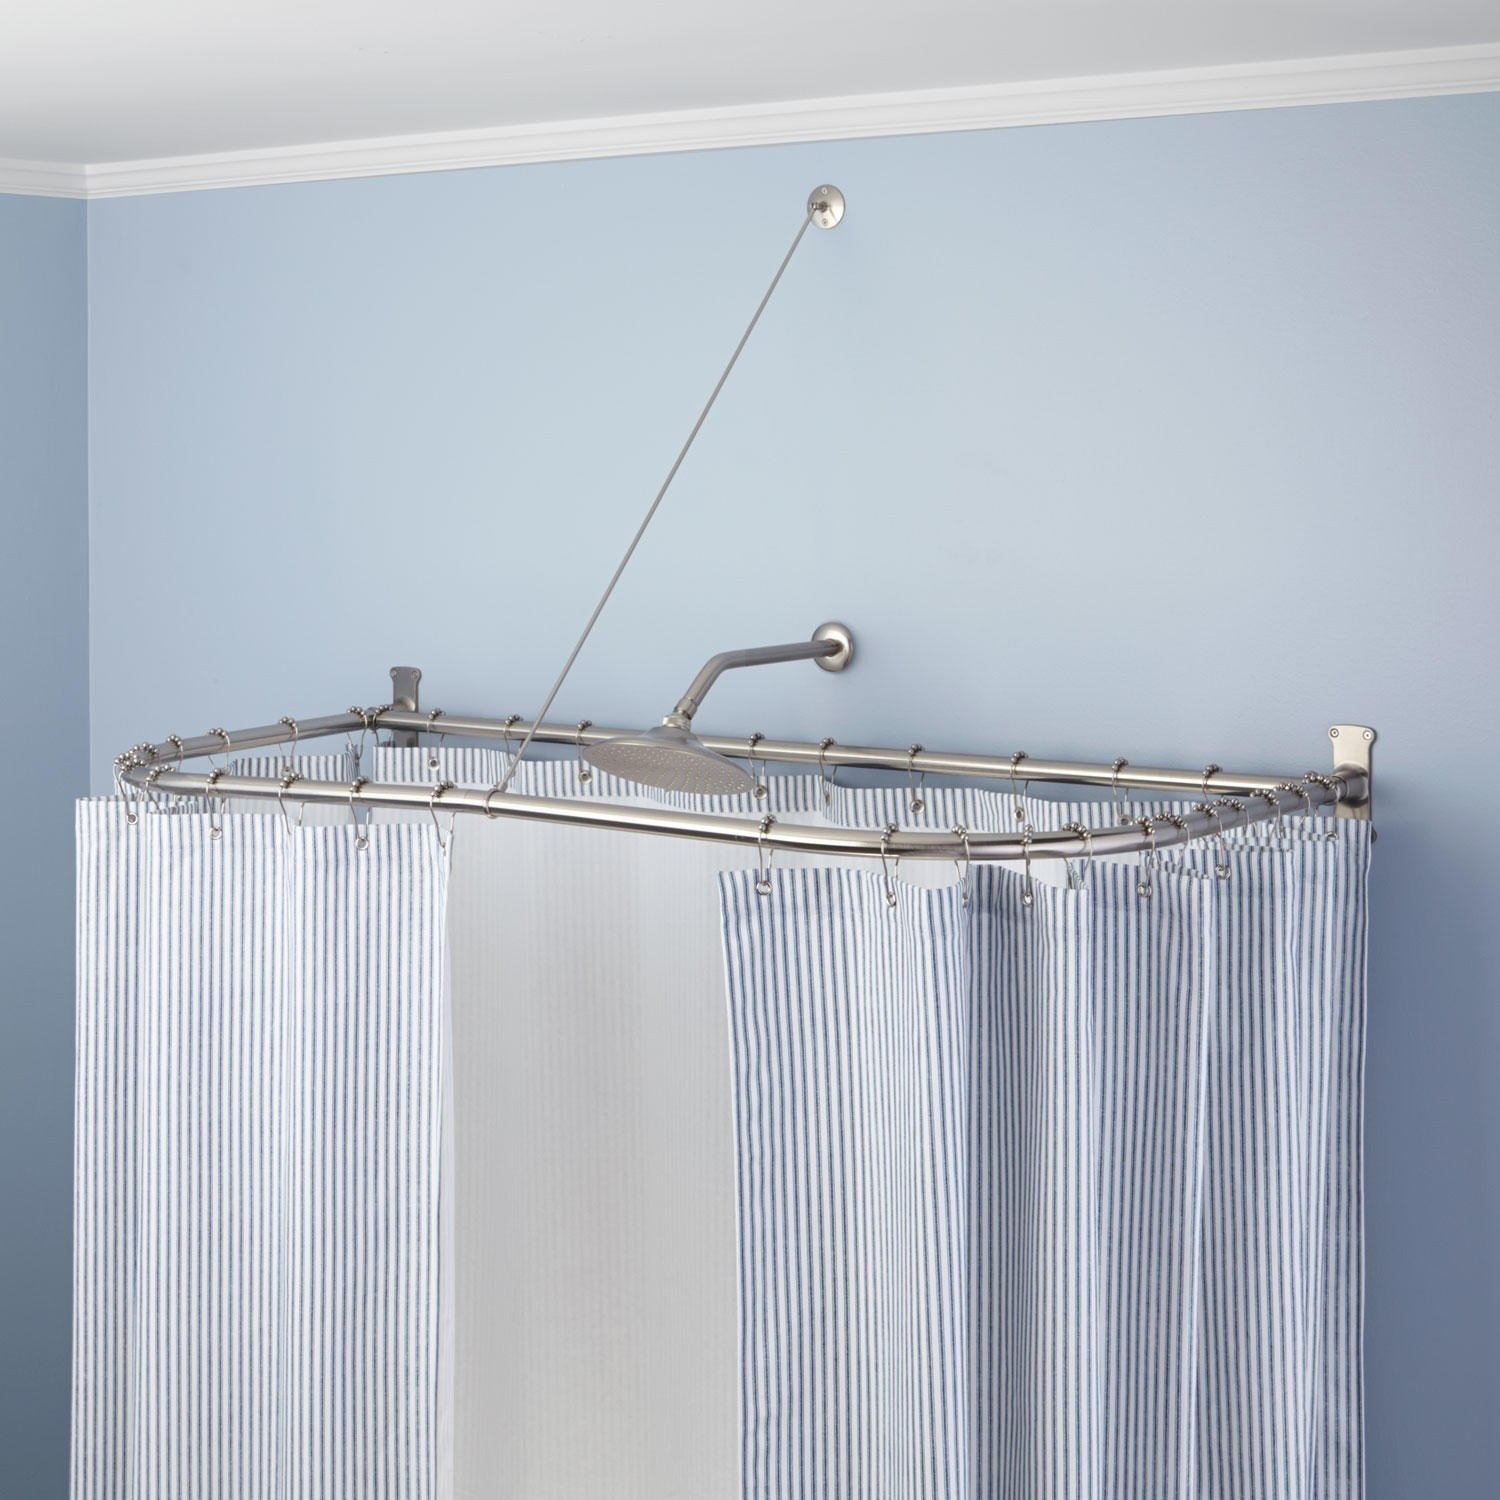 Shower Curtain Rods For Clawfoot Tubs Pertaining To Shower Curtains For Clawfoot Tubs (Image 22 of 25)